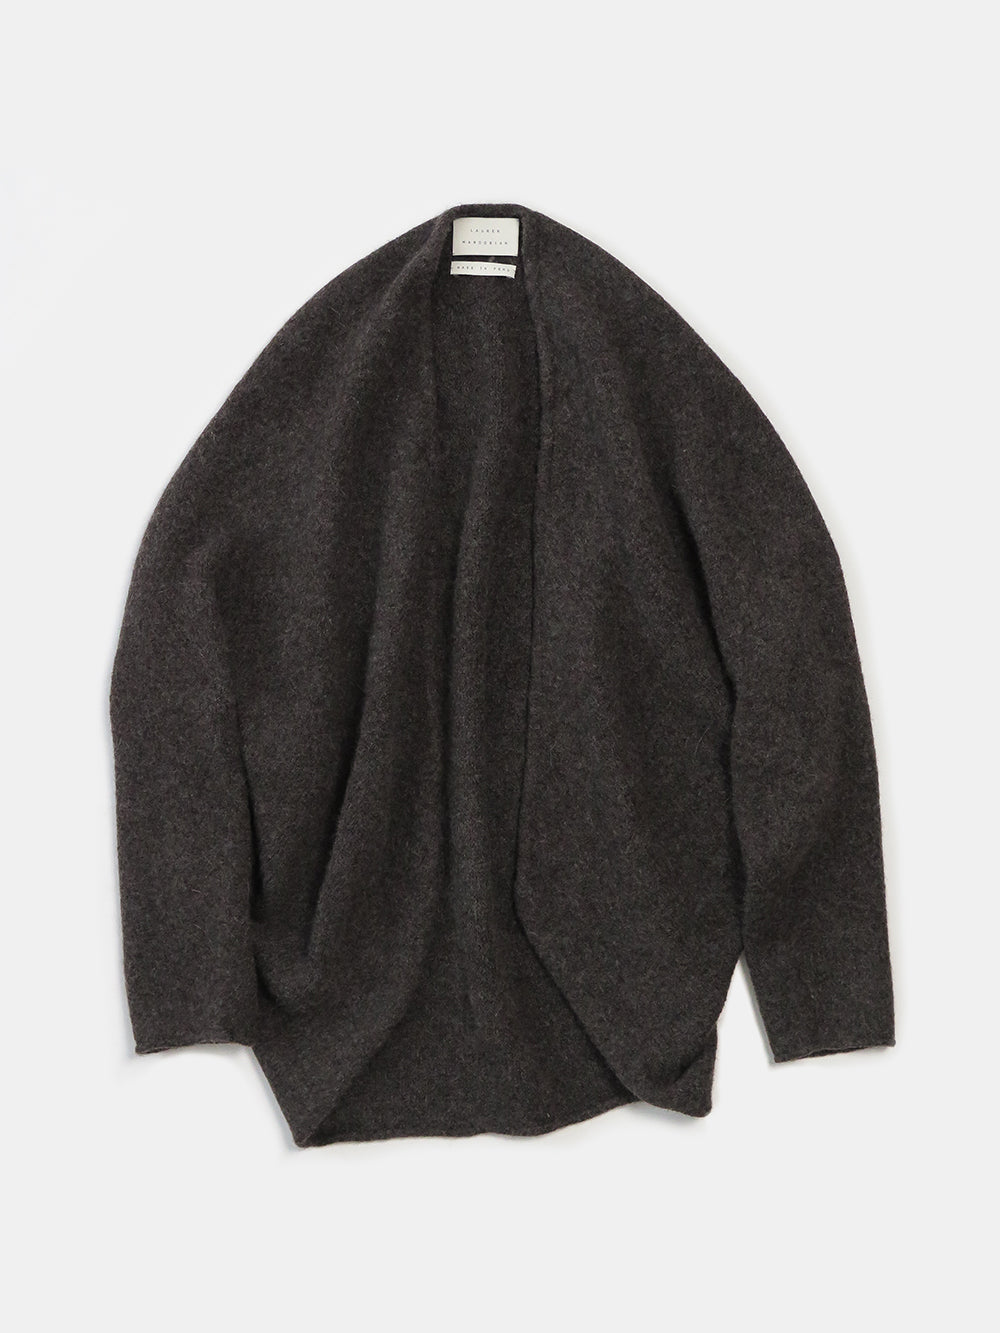 lauren manoogian horizontal cardigan in patina